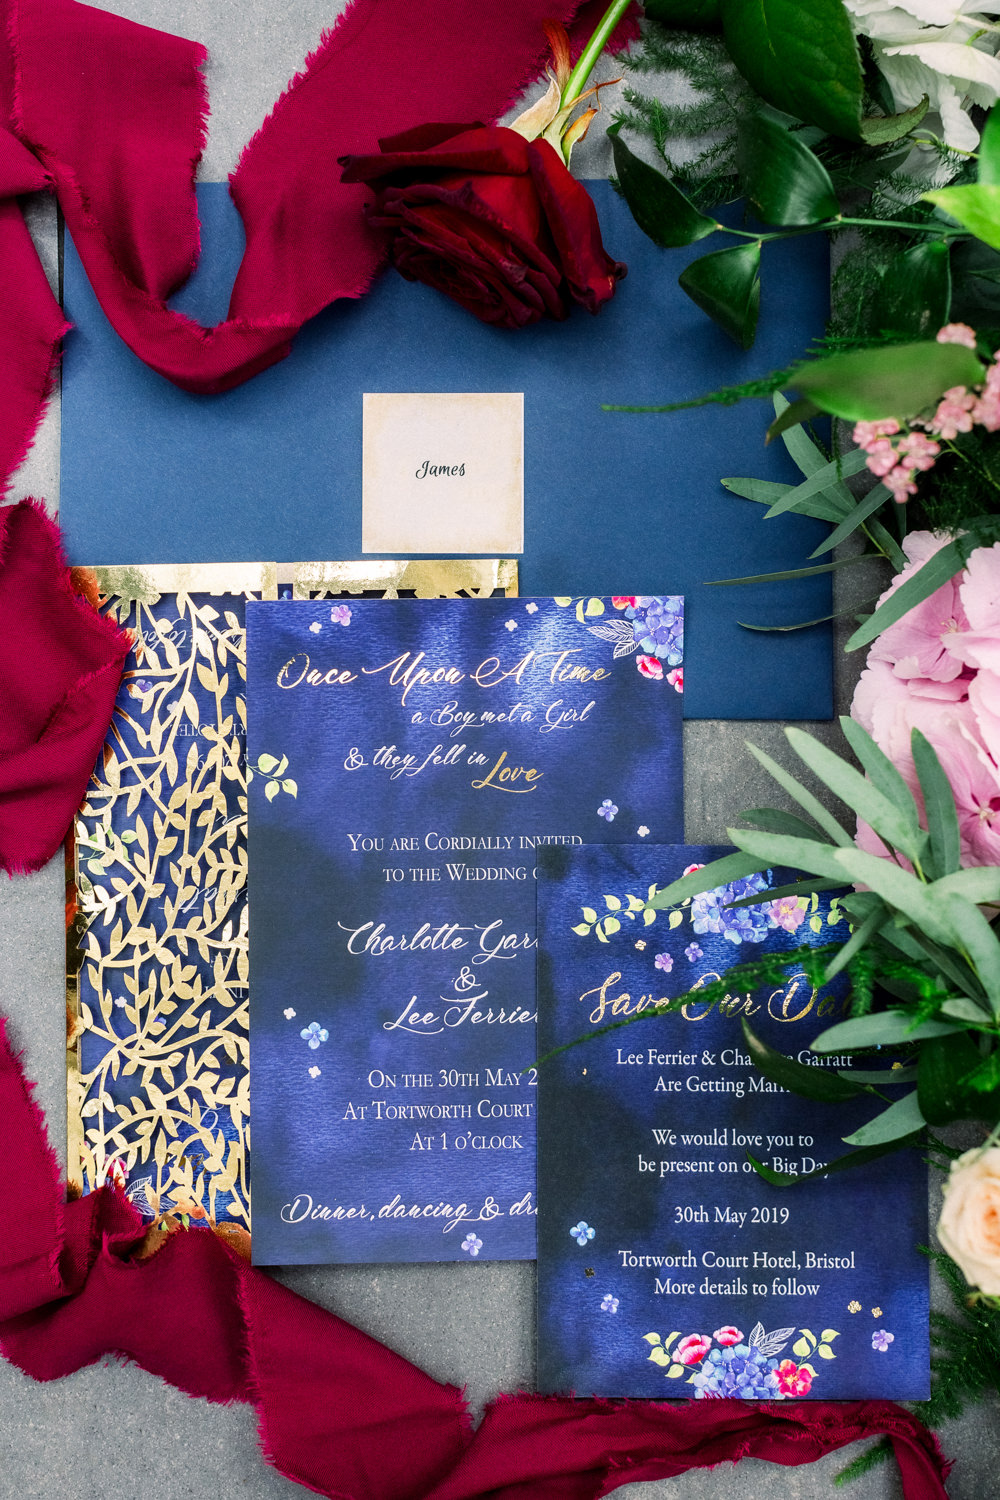 Stationery Invite Invitation Suite Flatlay Blue Floral Red Ribbon Gold Tortworth Court Wedding Sanshine Photography